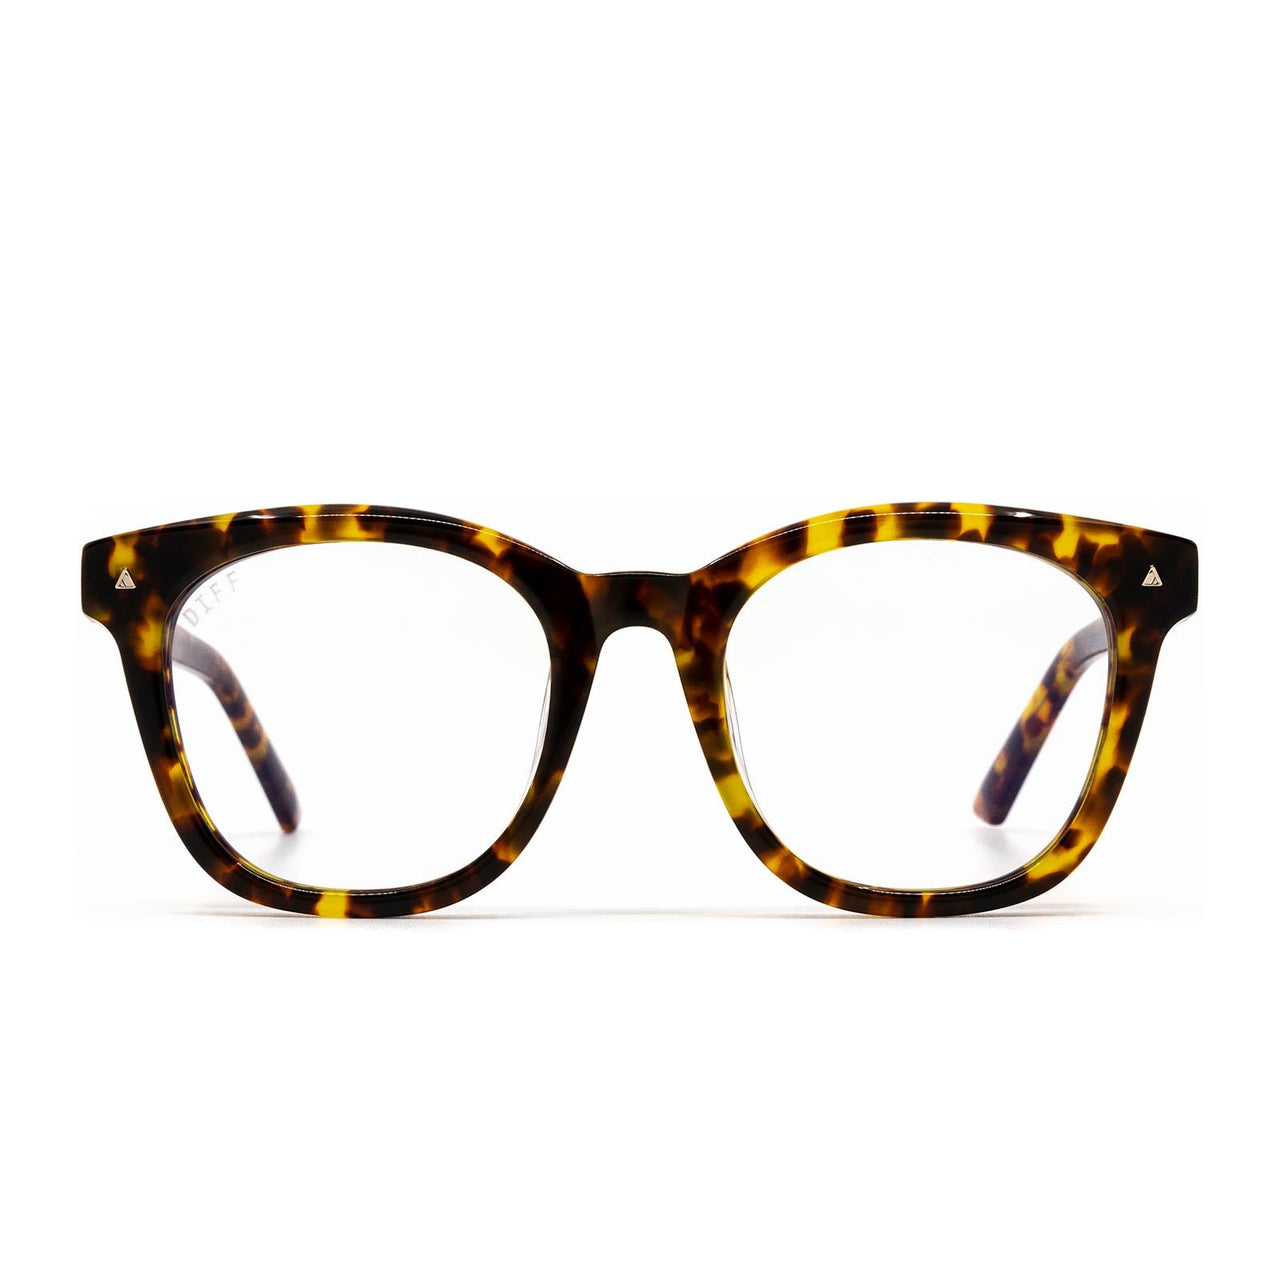 Ryder prescription glasses with amber tortoise frames and clear lens front view